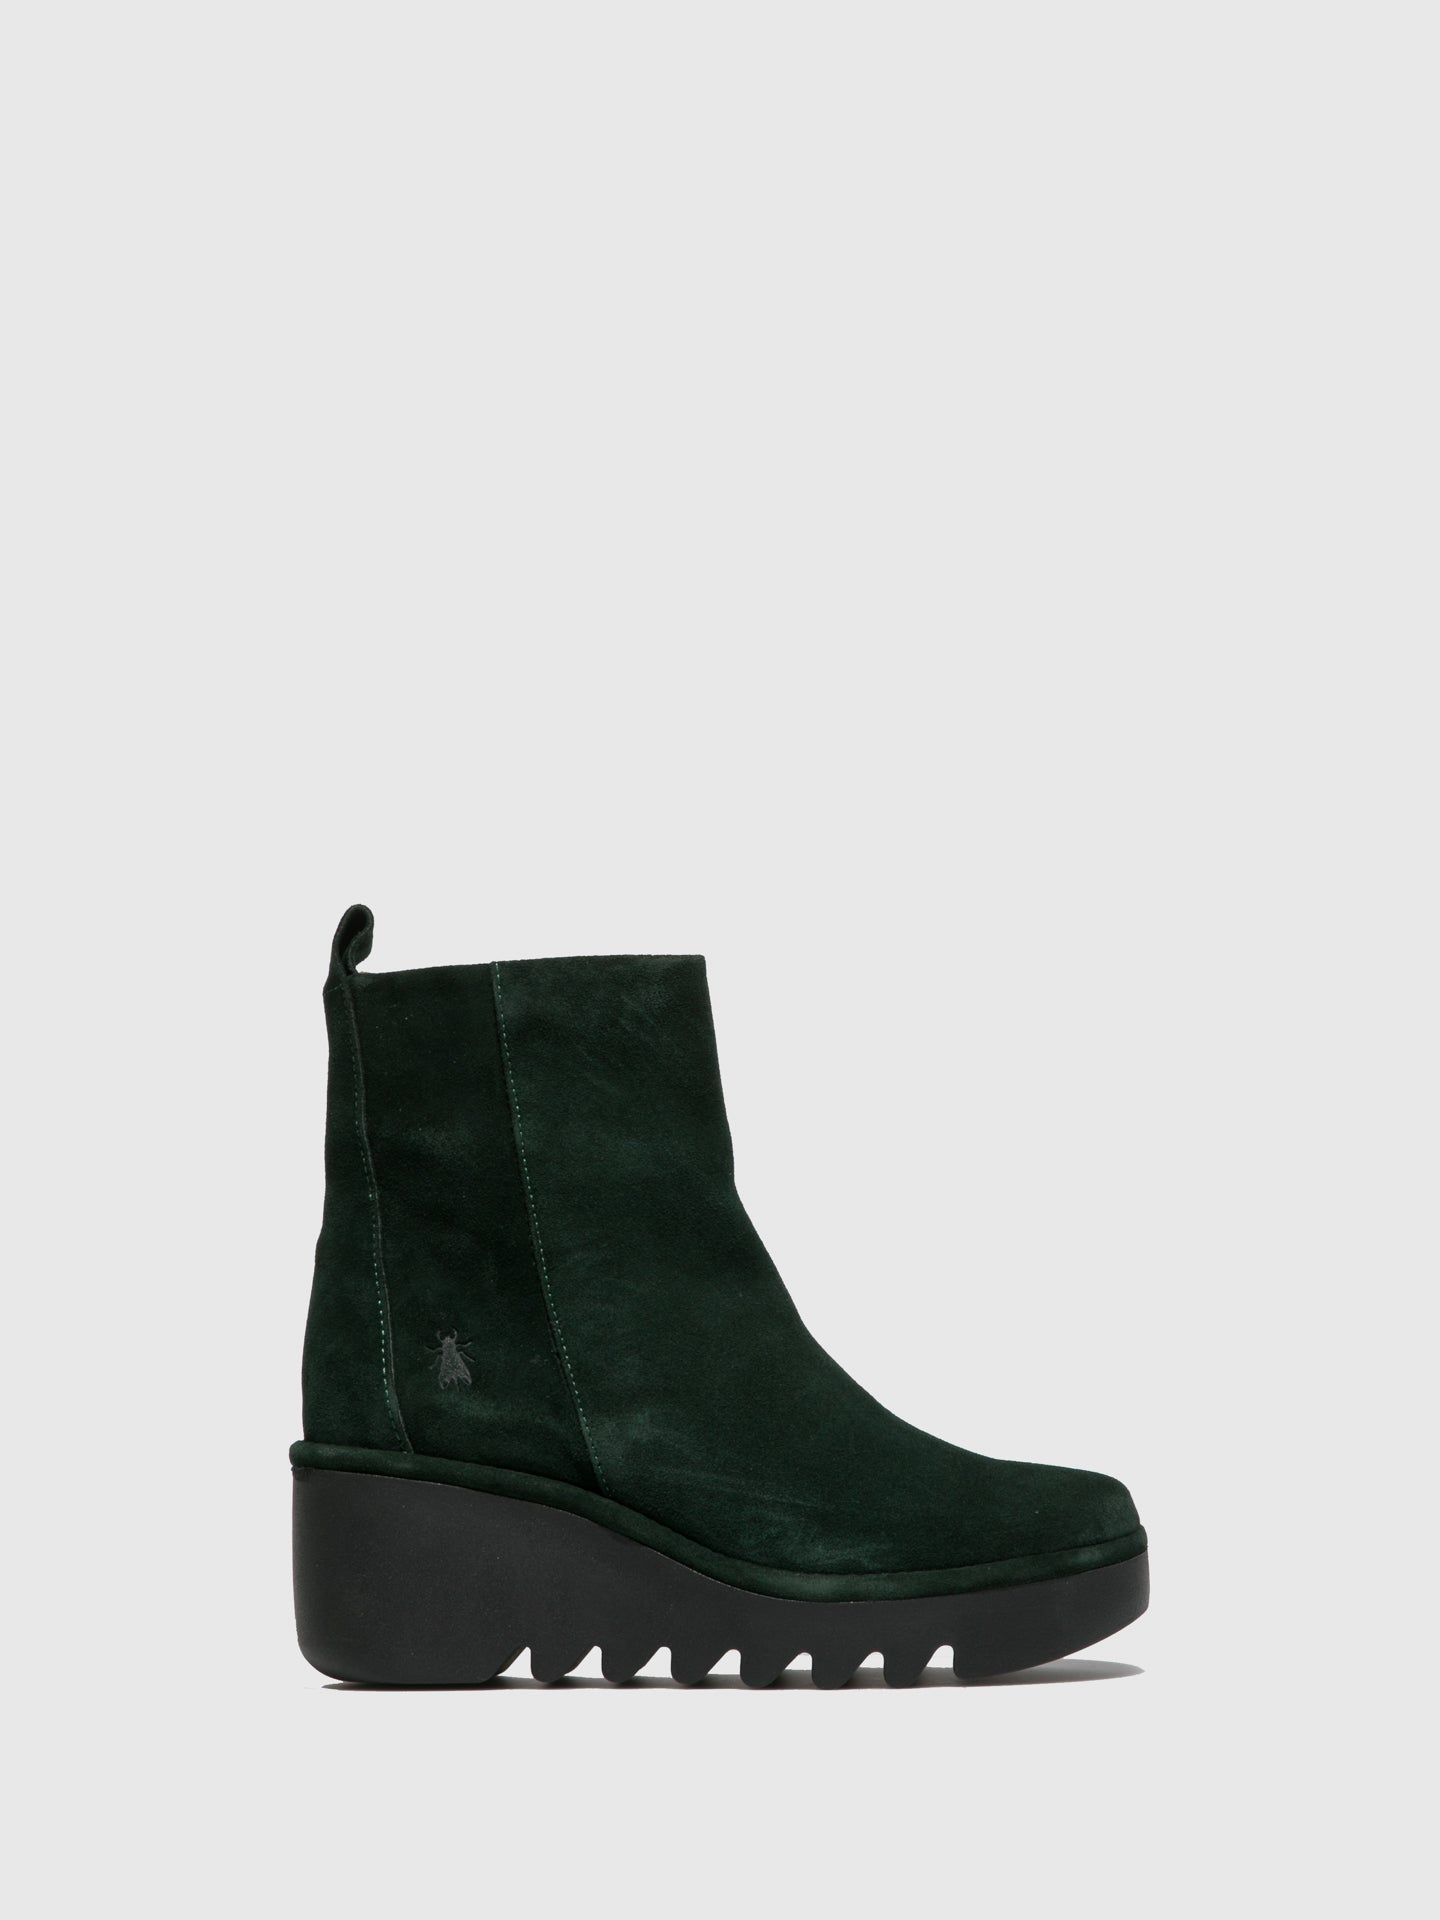 Fly London Botins com Fecho BALE250FLY OILSUEDE GREEN FOREST